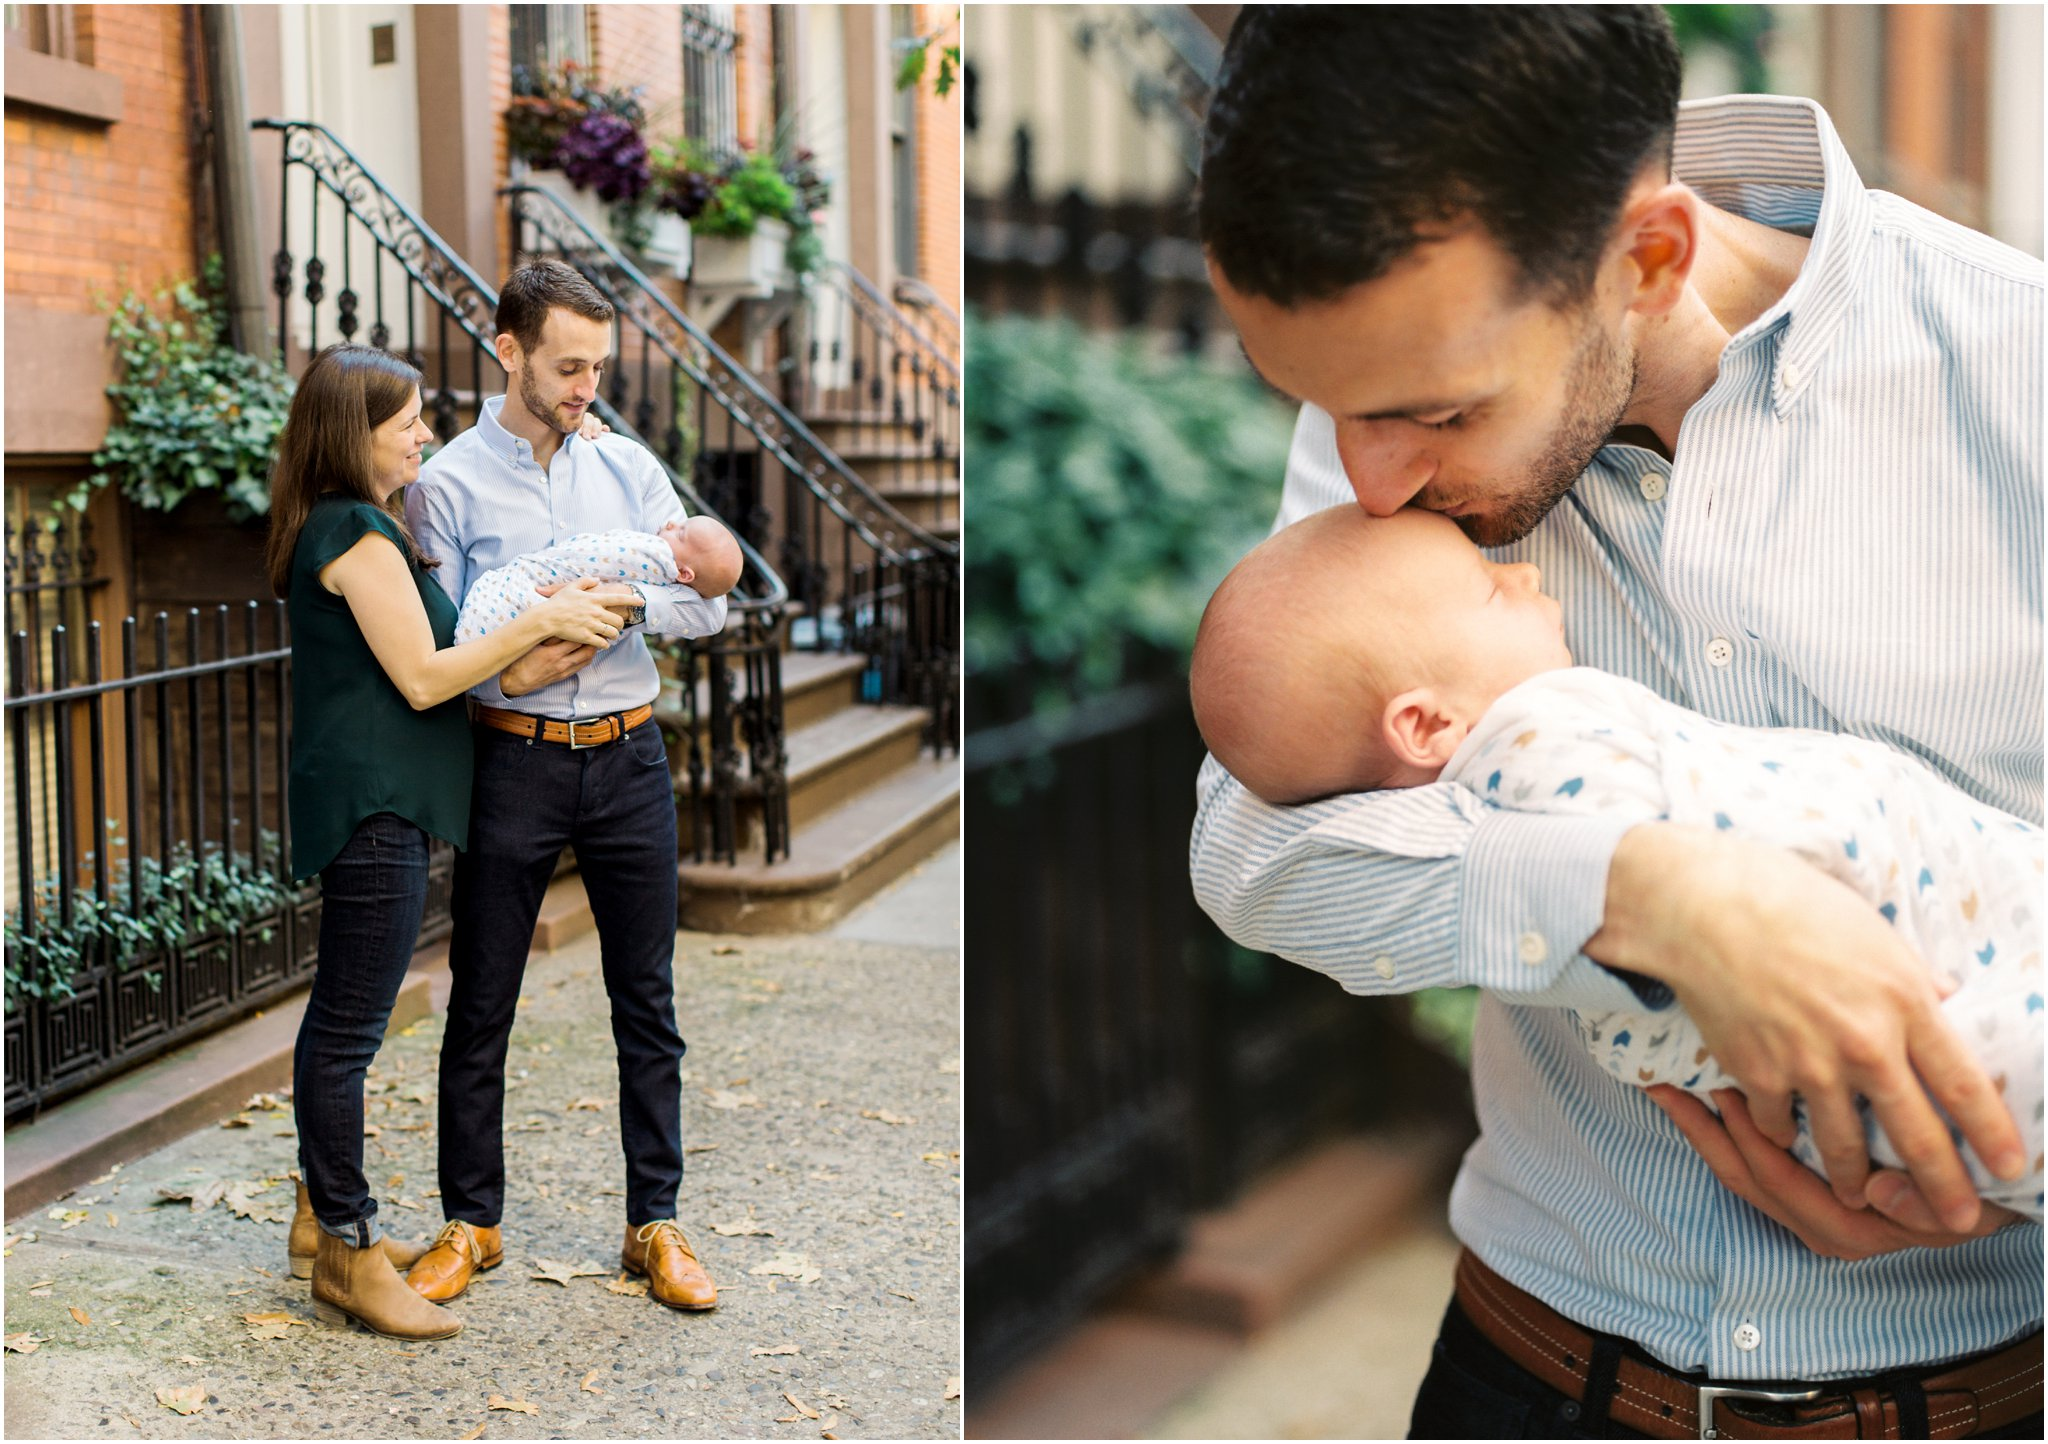 New york city newborn photos by charlottesville family photographer, amy nicole photography-009